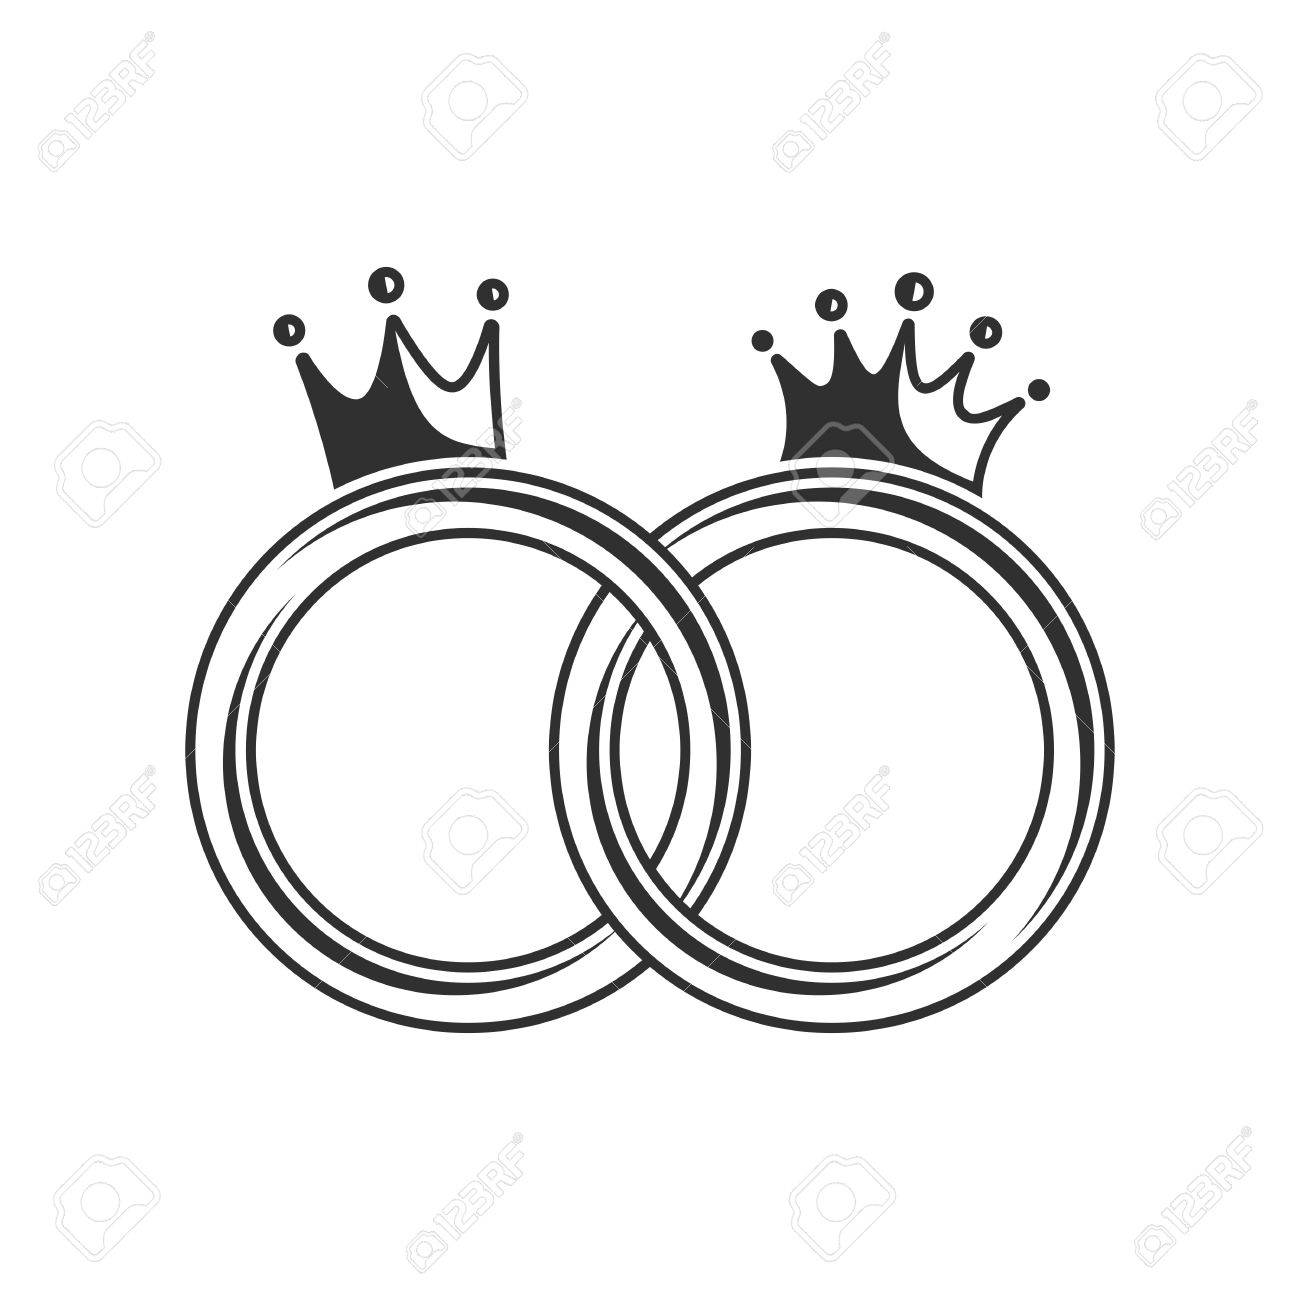 Wedding rings on a white background. Vector illustration of wedding rings with a closed royal crown. - 52898186